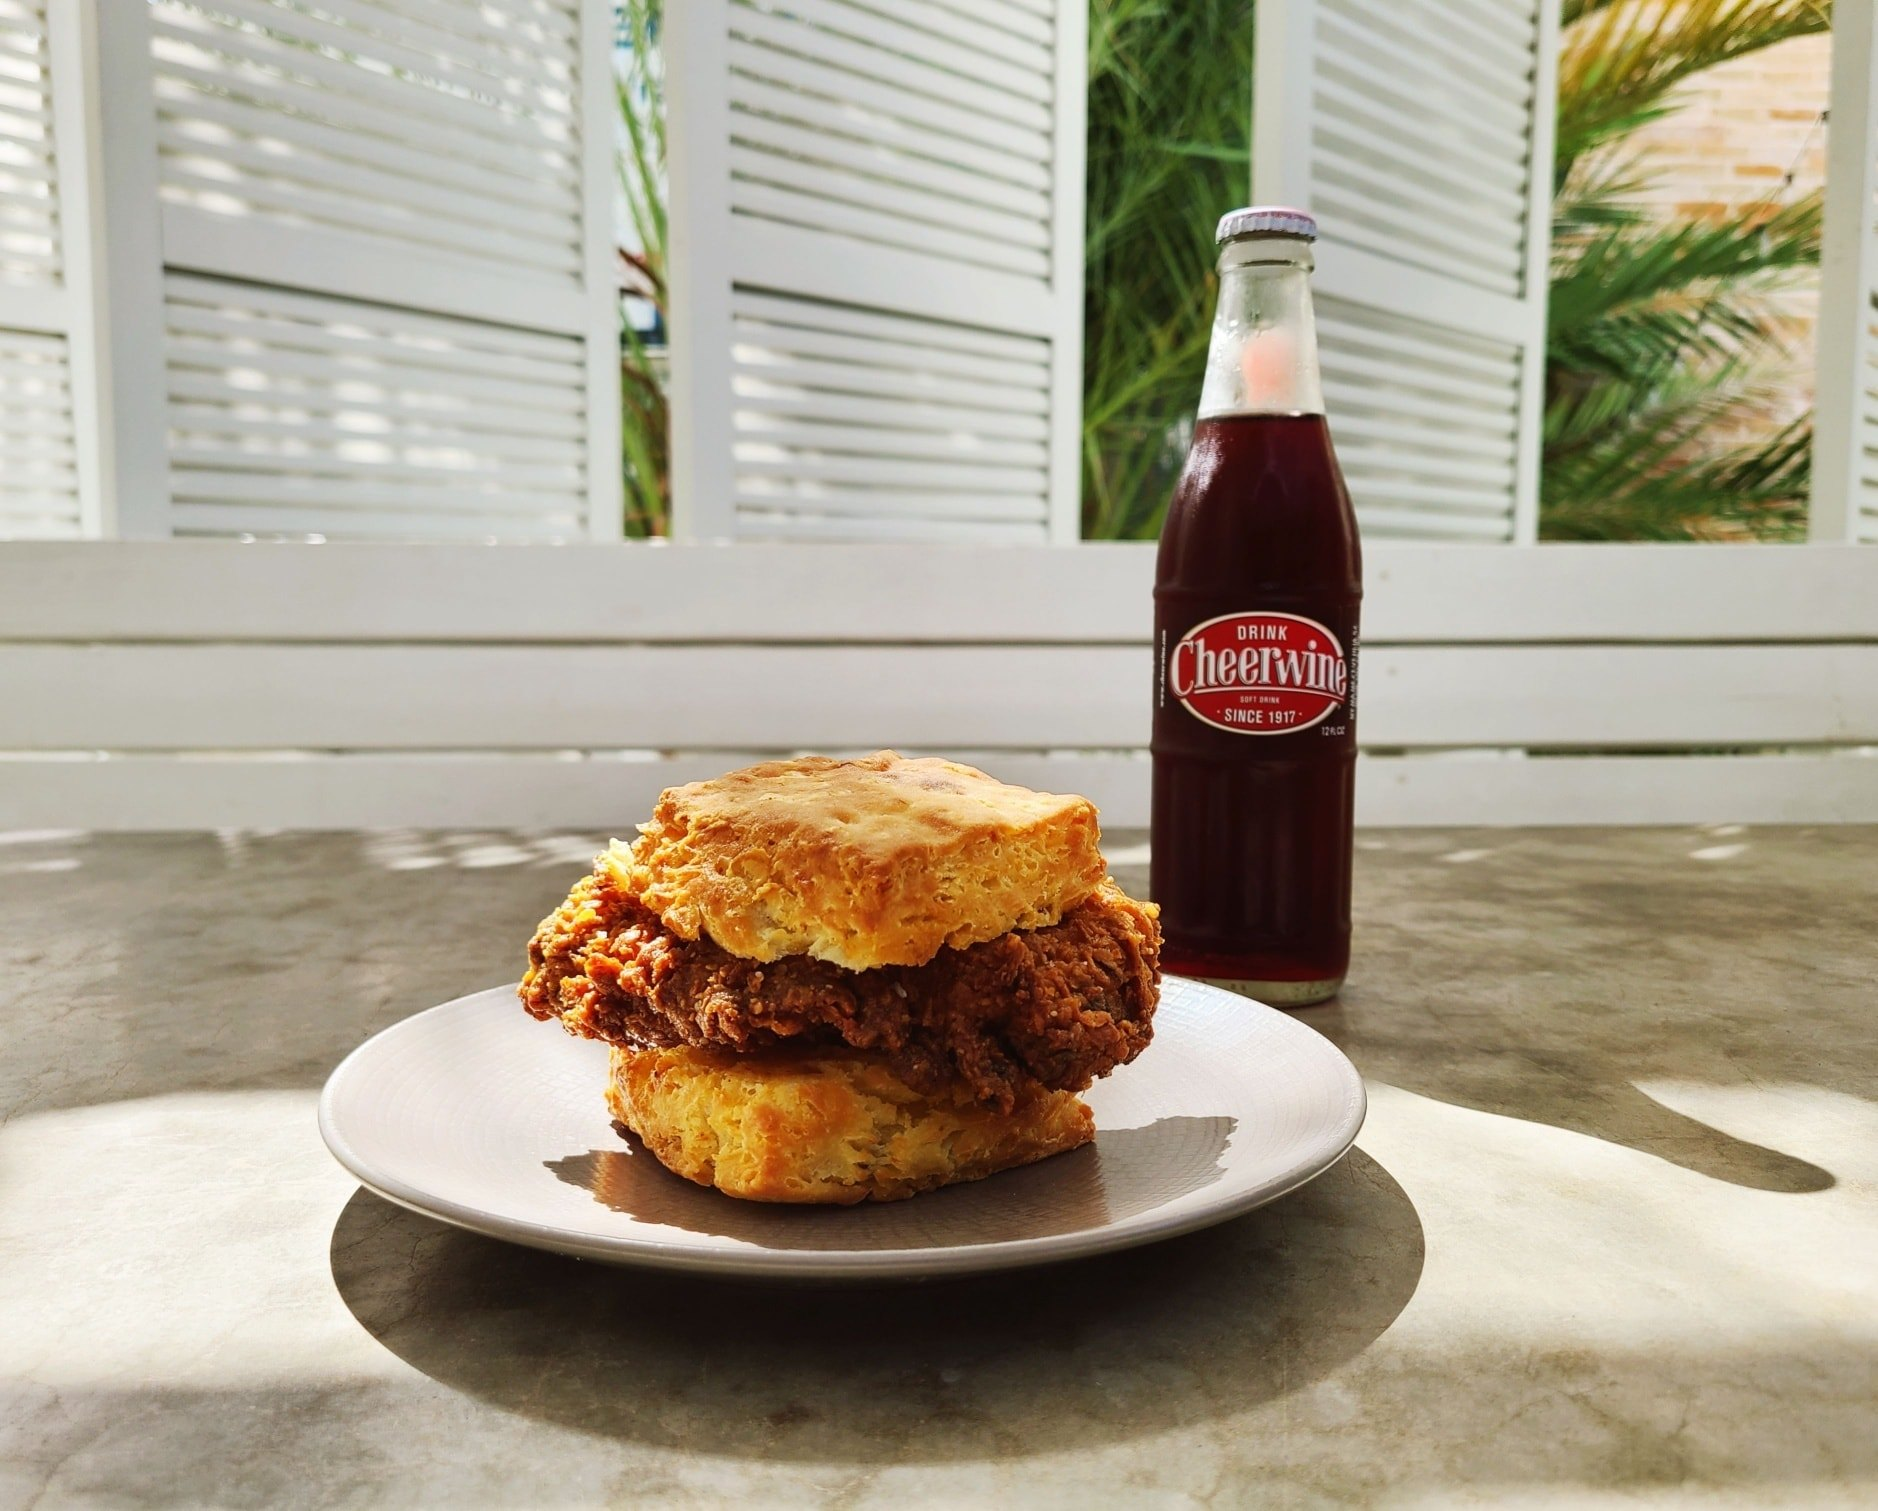 The fried chicken biscuit sandwich from Little Ola's